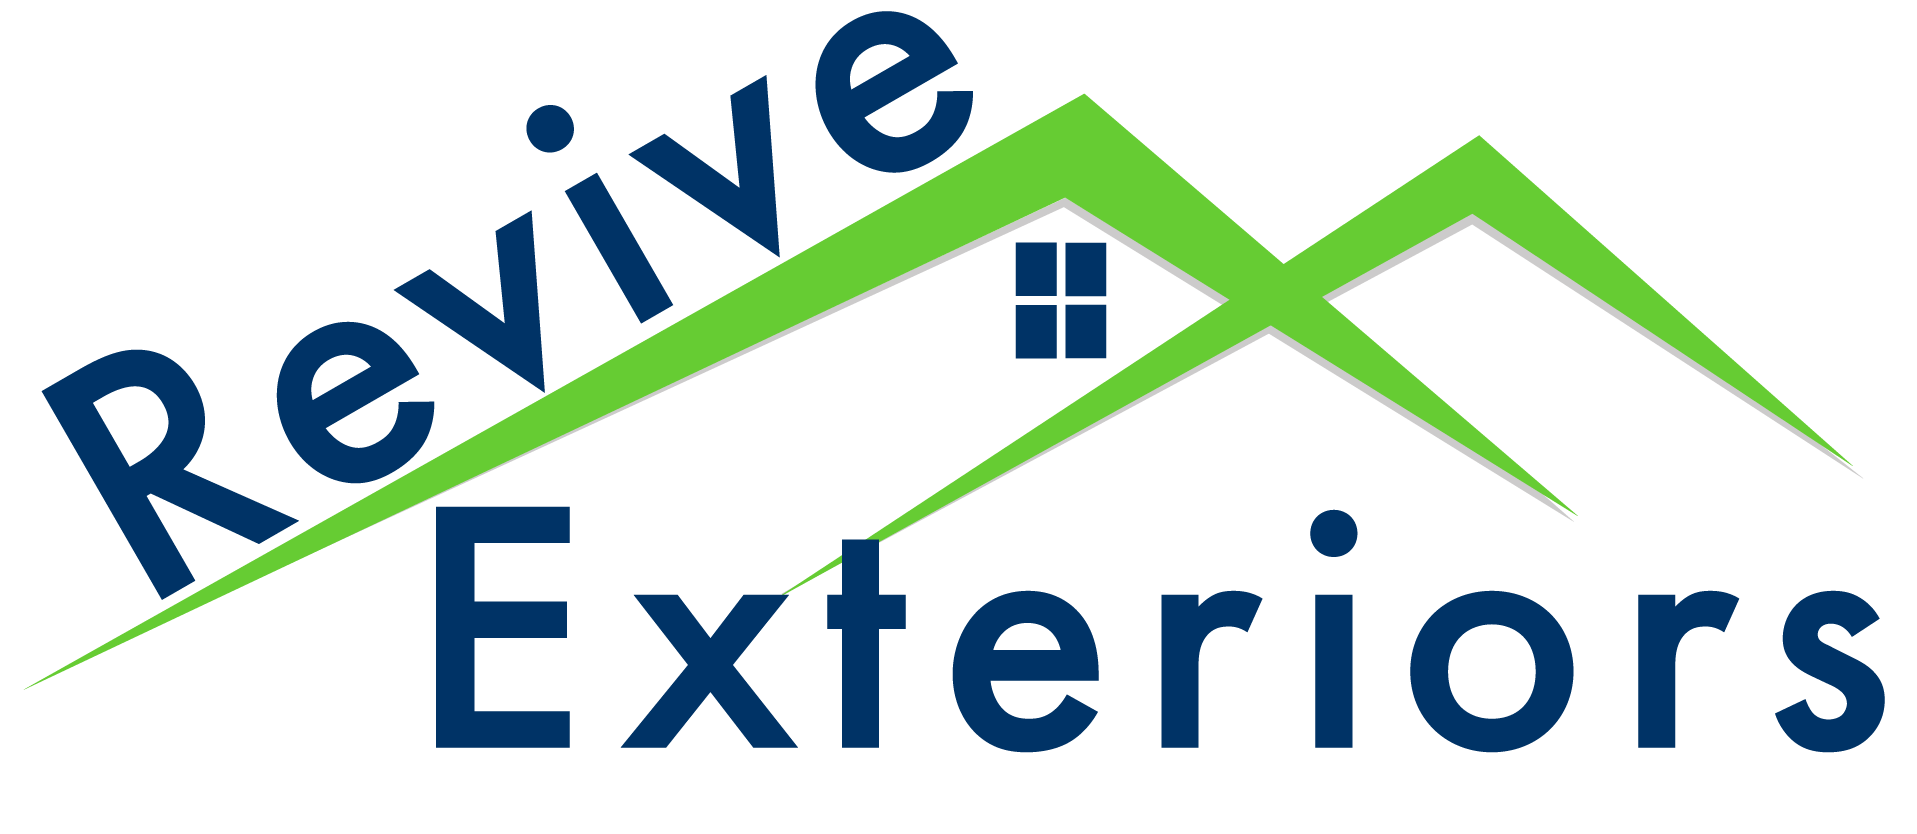 Bbb a  logo png. Revive exteriors better business